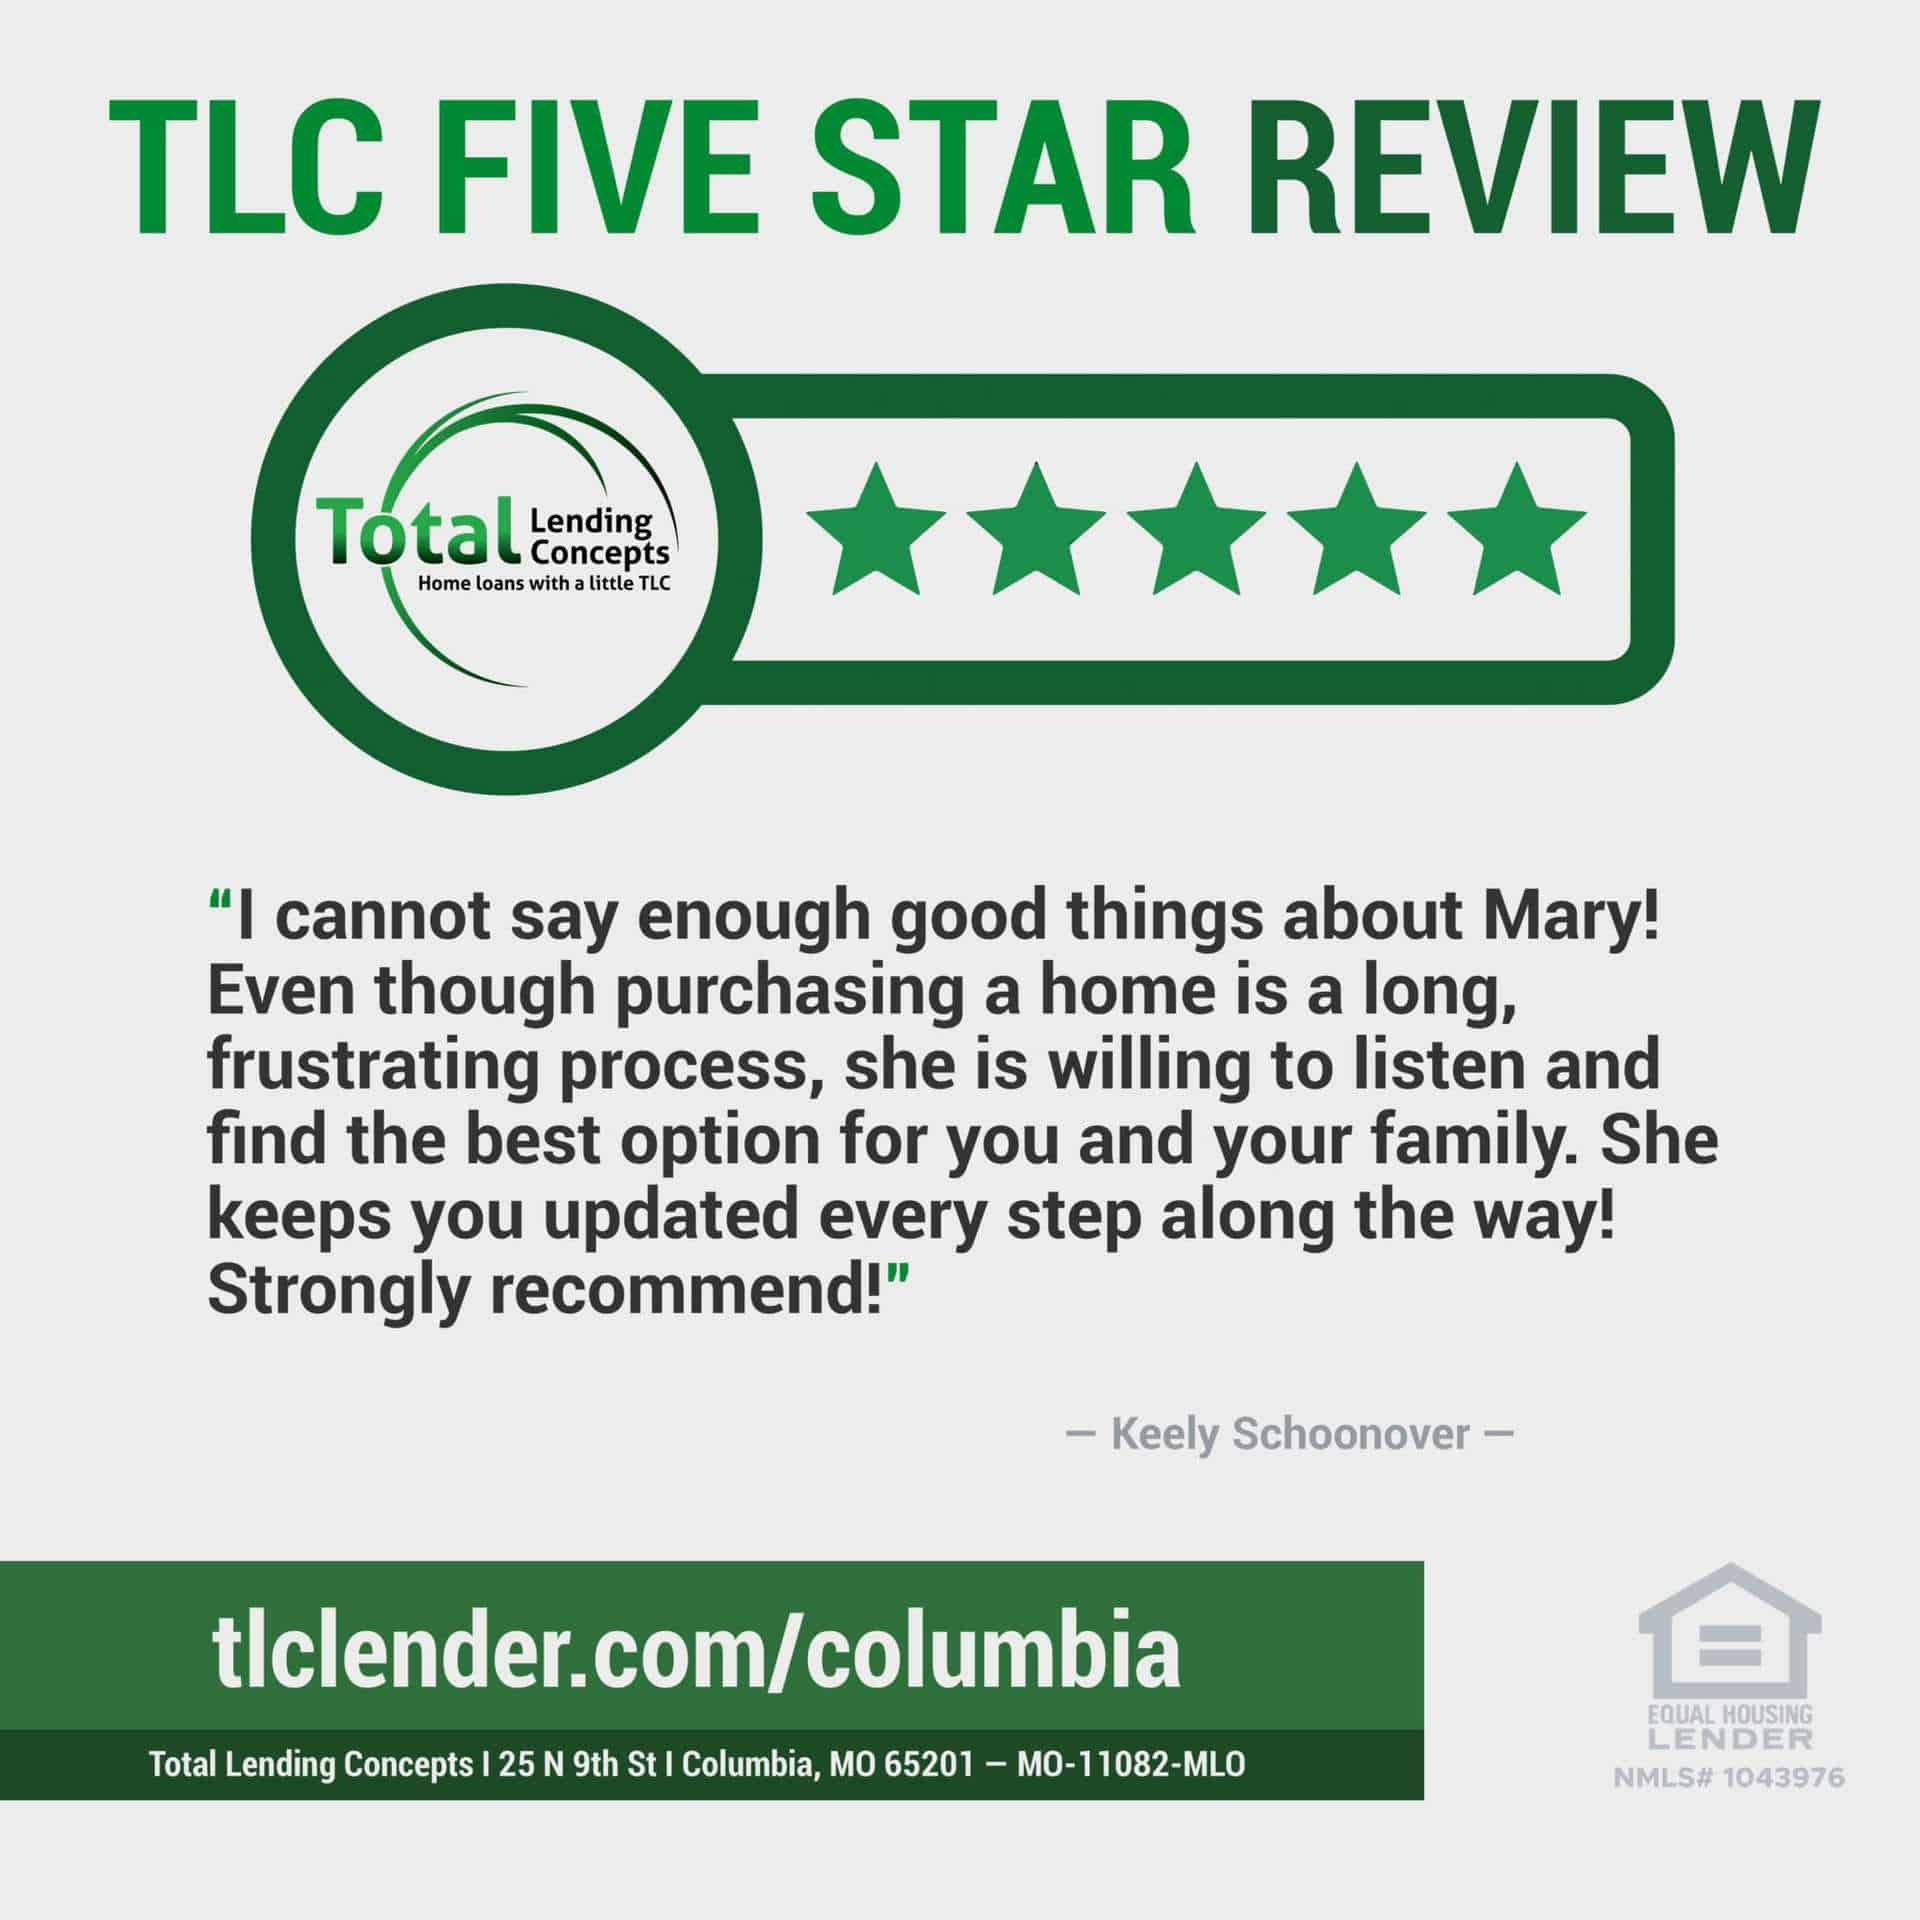 Total Lending Concepts Five Star Review Keely Schoonover in Columbia Missouri for Mary Home Loan